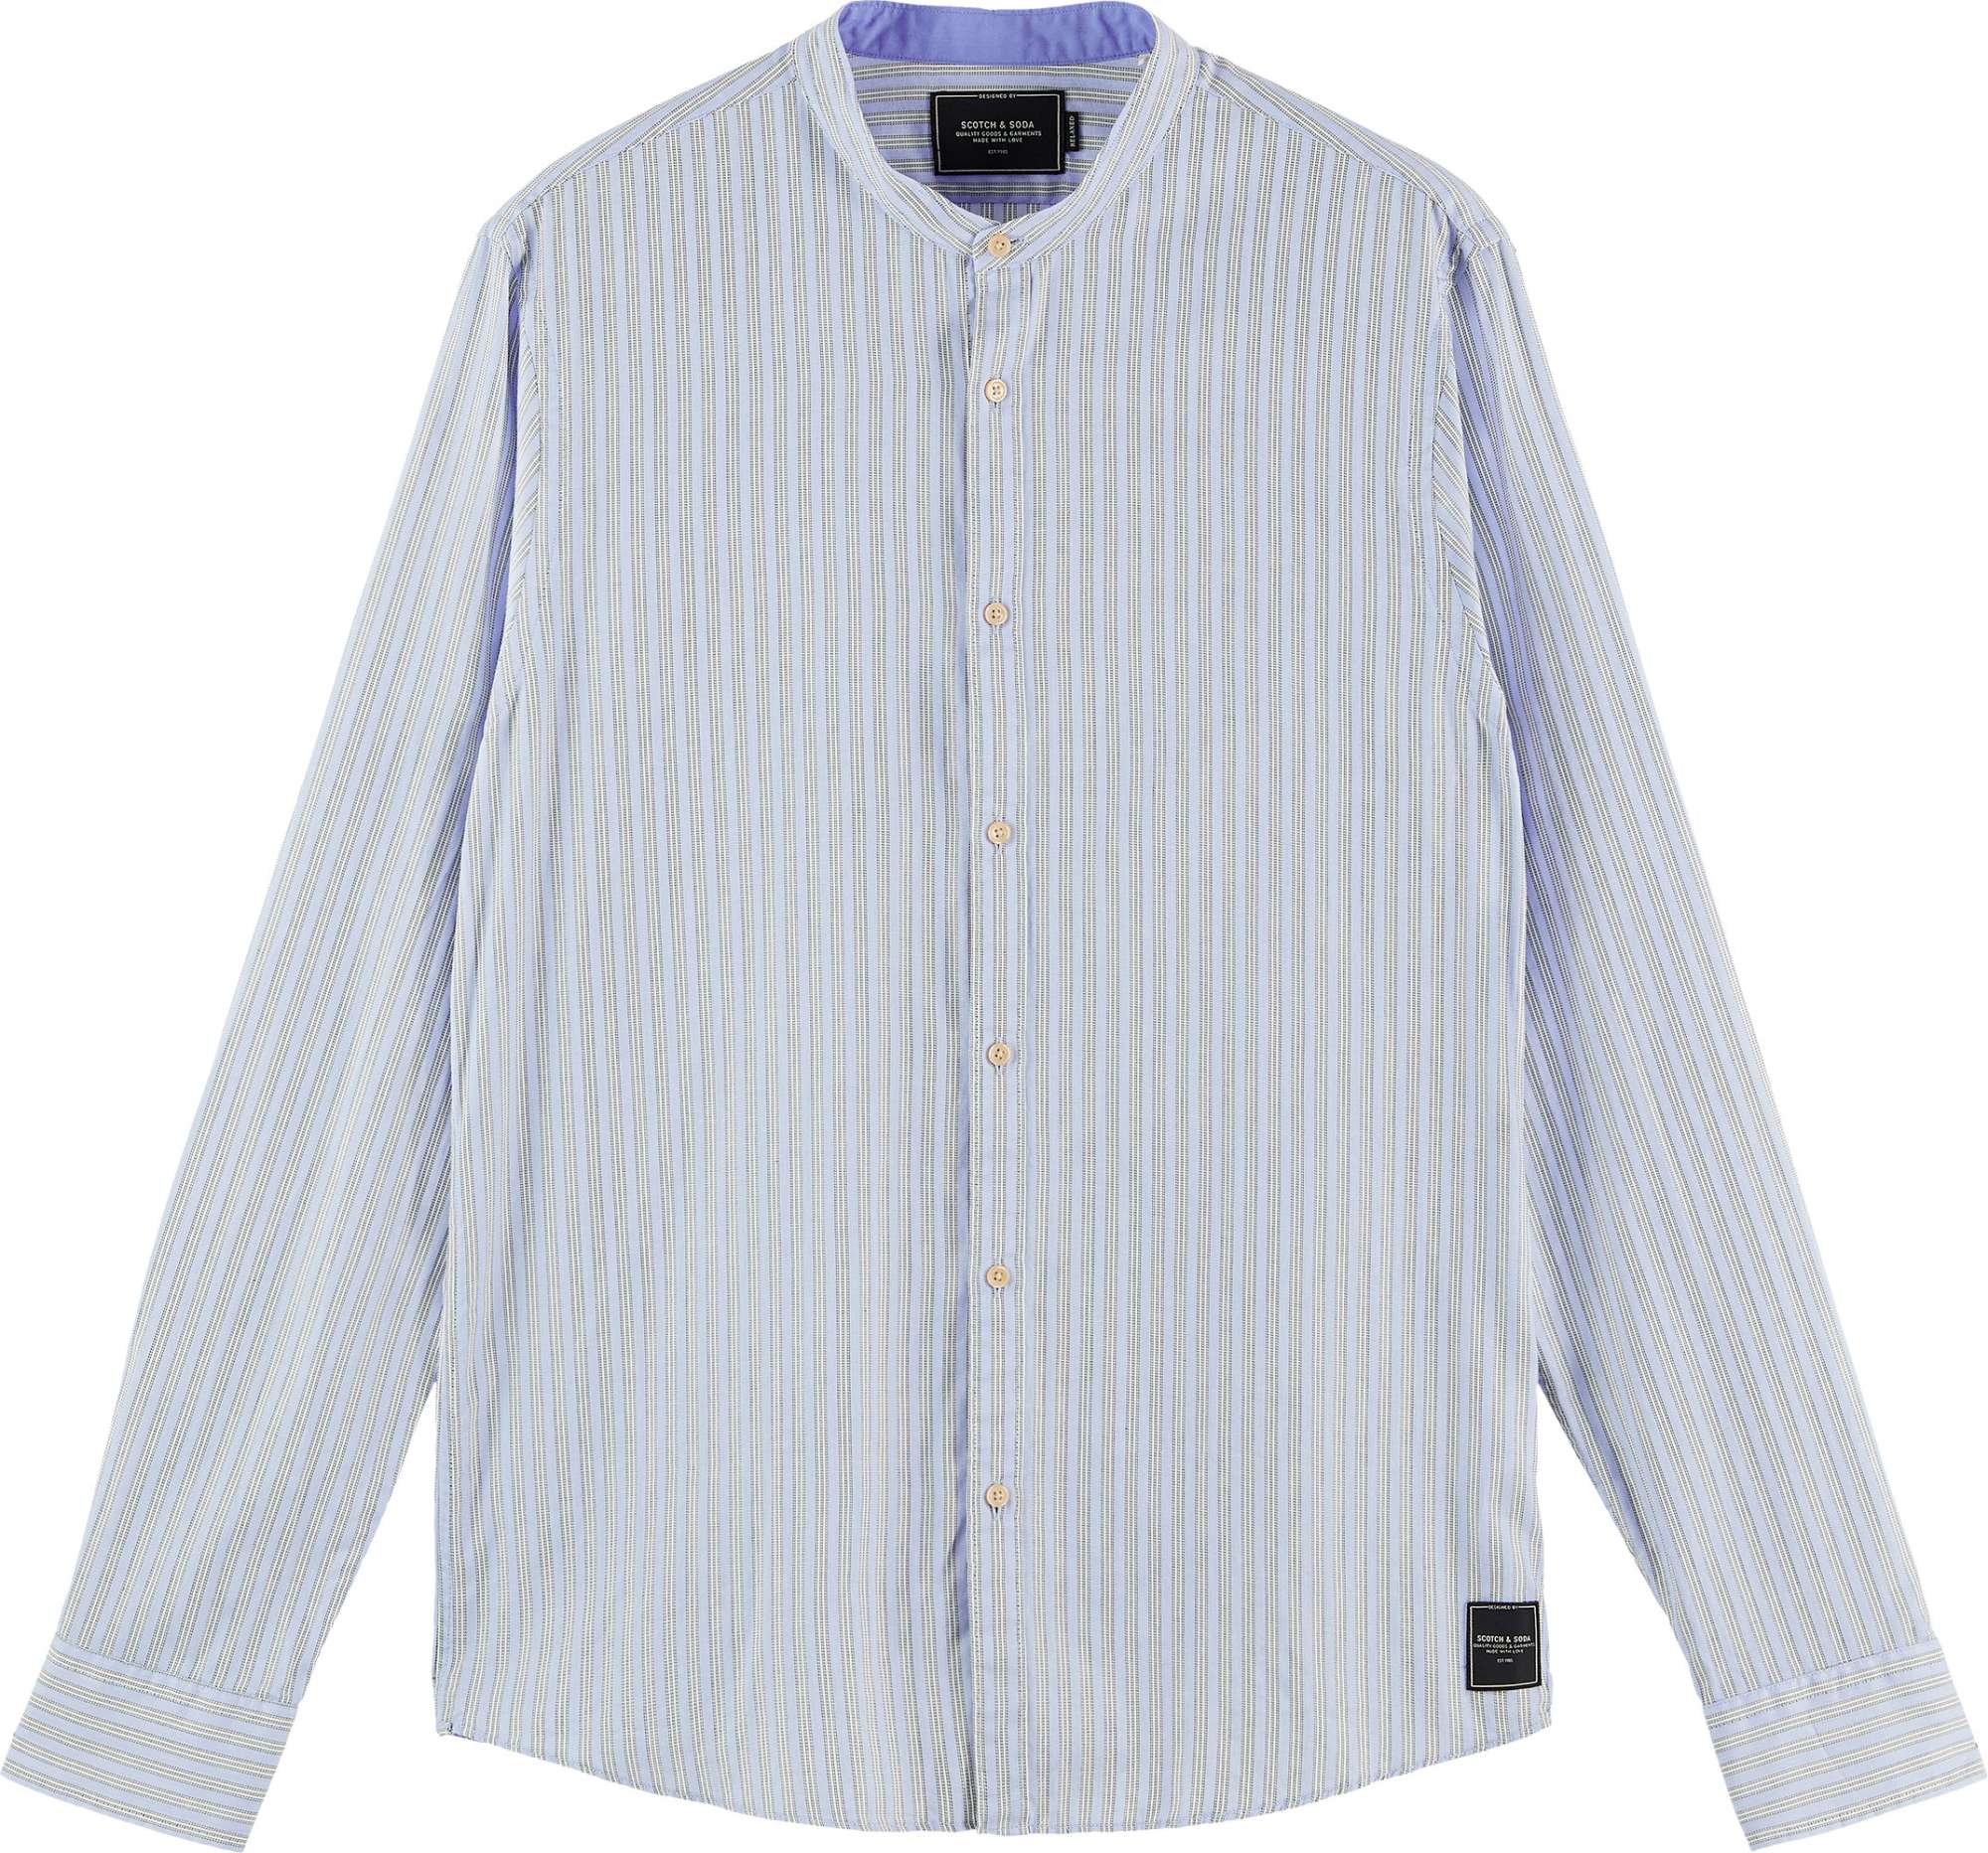 Relaxed fit- collarless shirt in blue striped